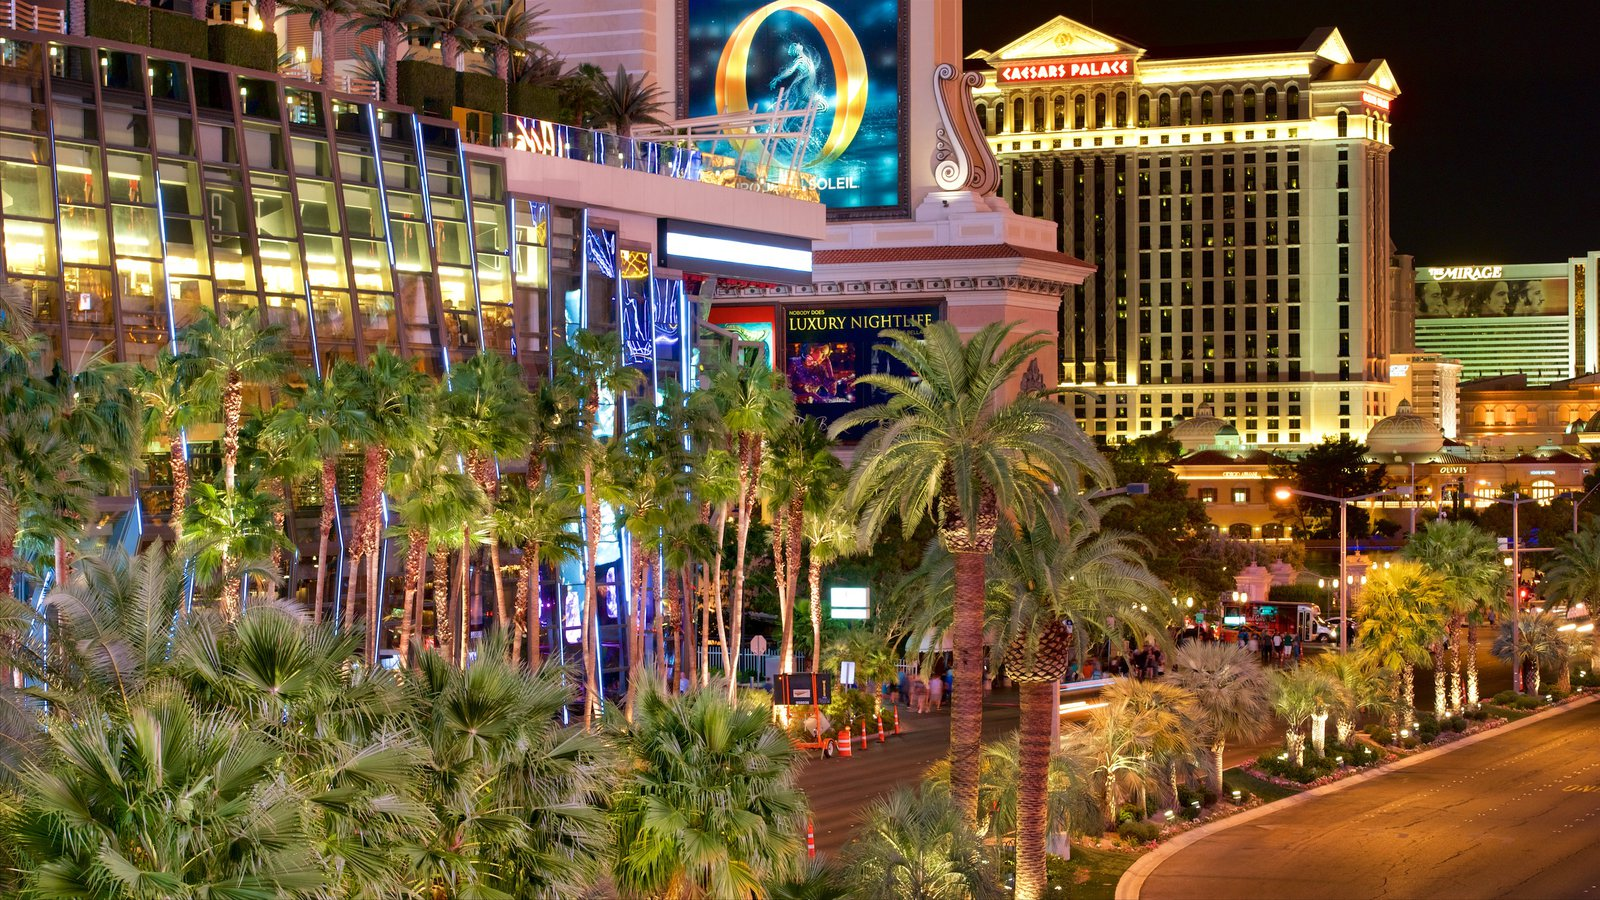 4 Nights in Vegas Get Deals on 5 day 4 Night Stays in